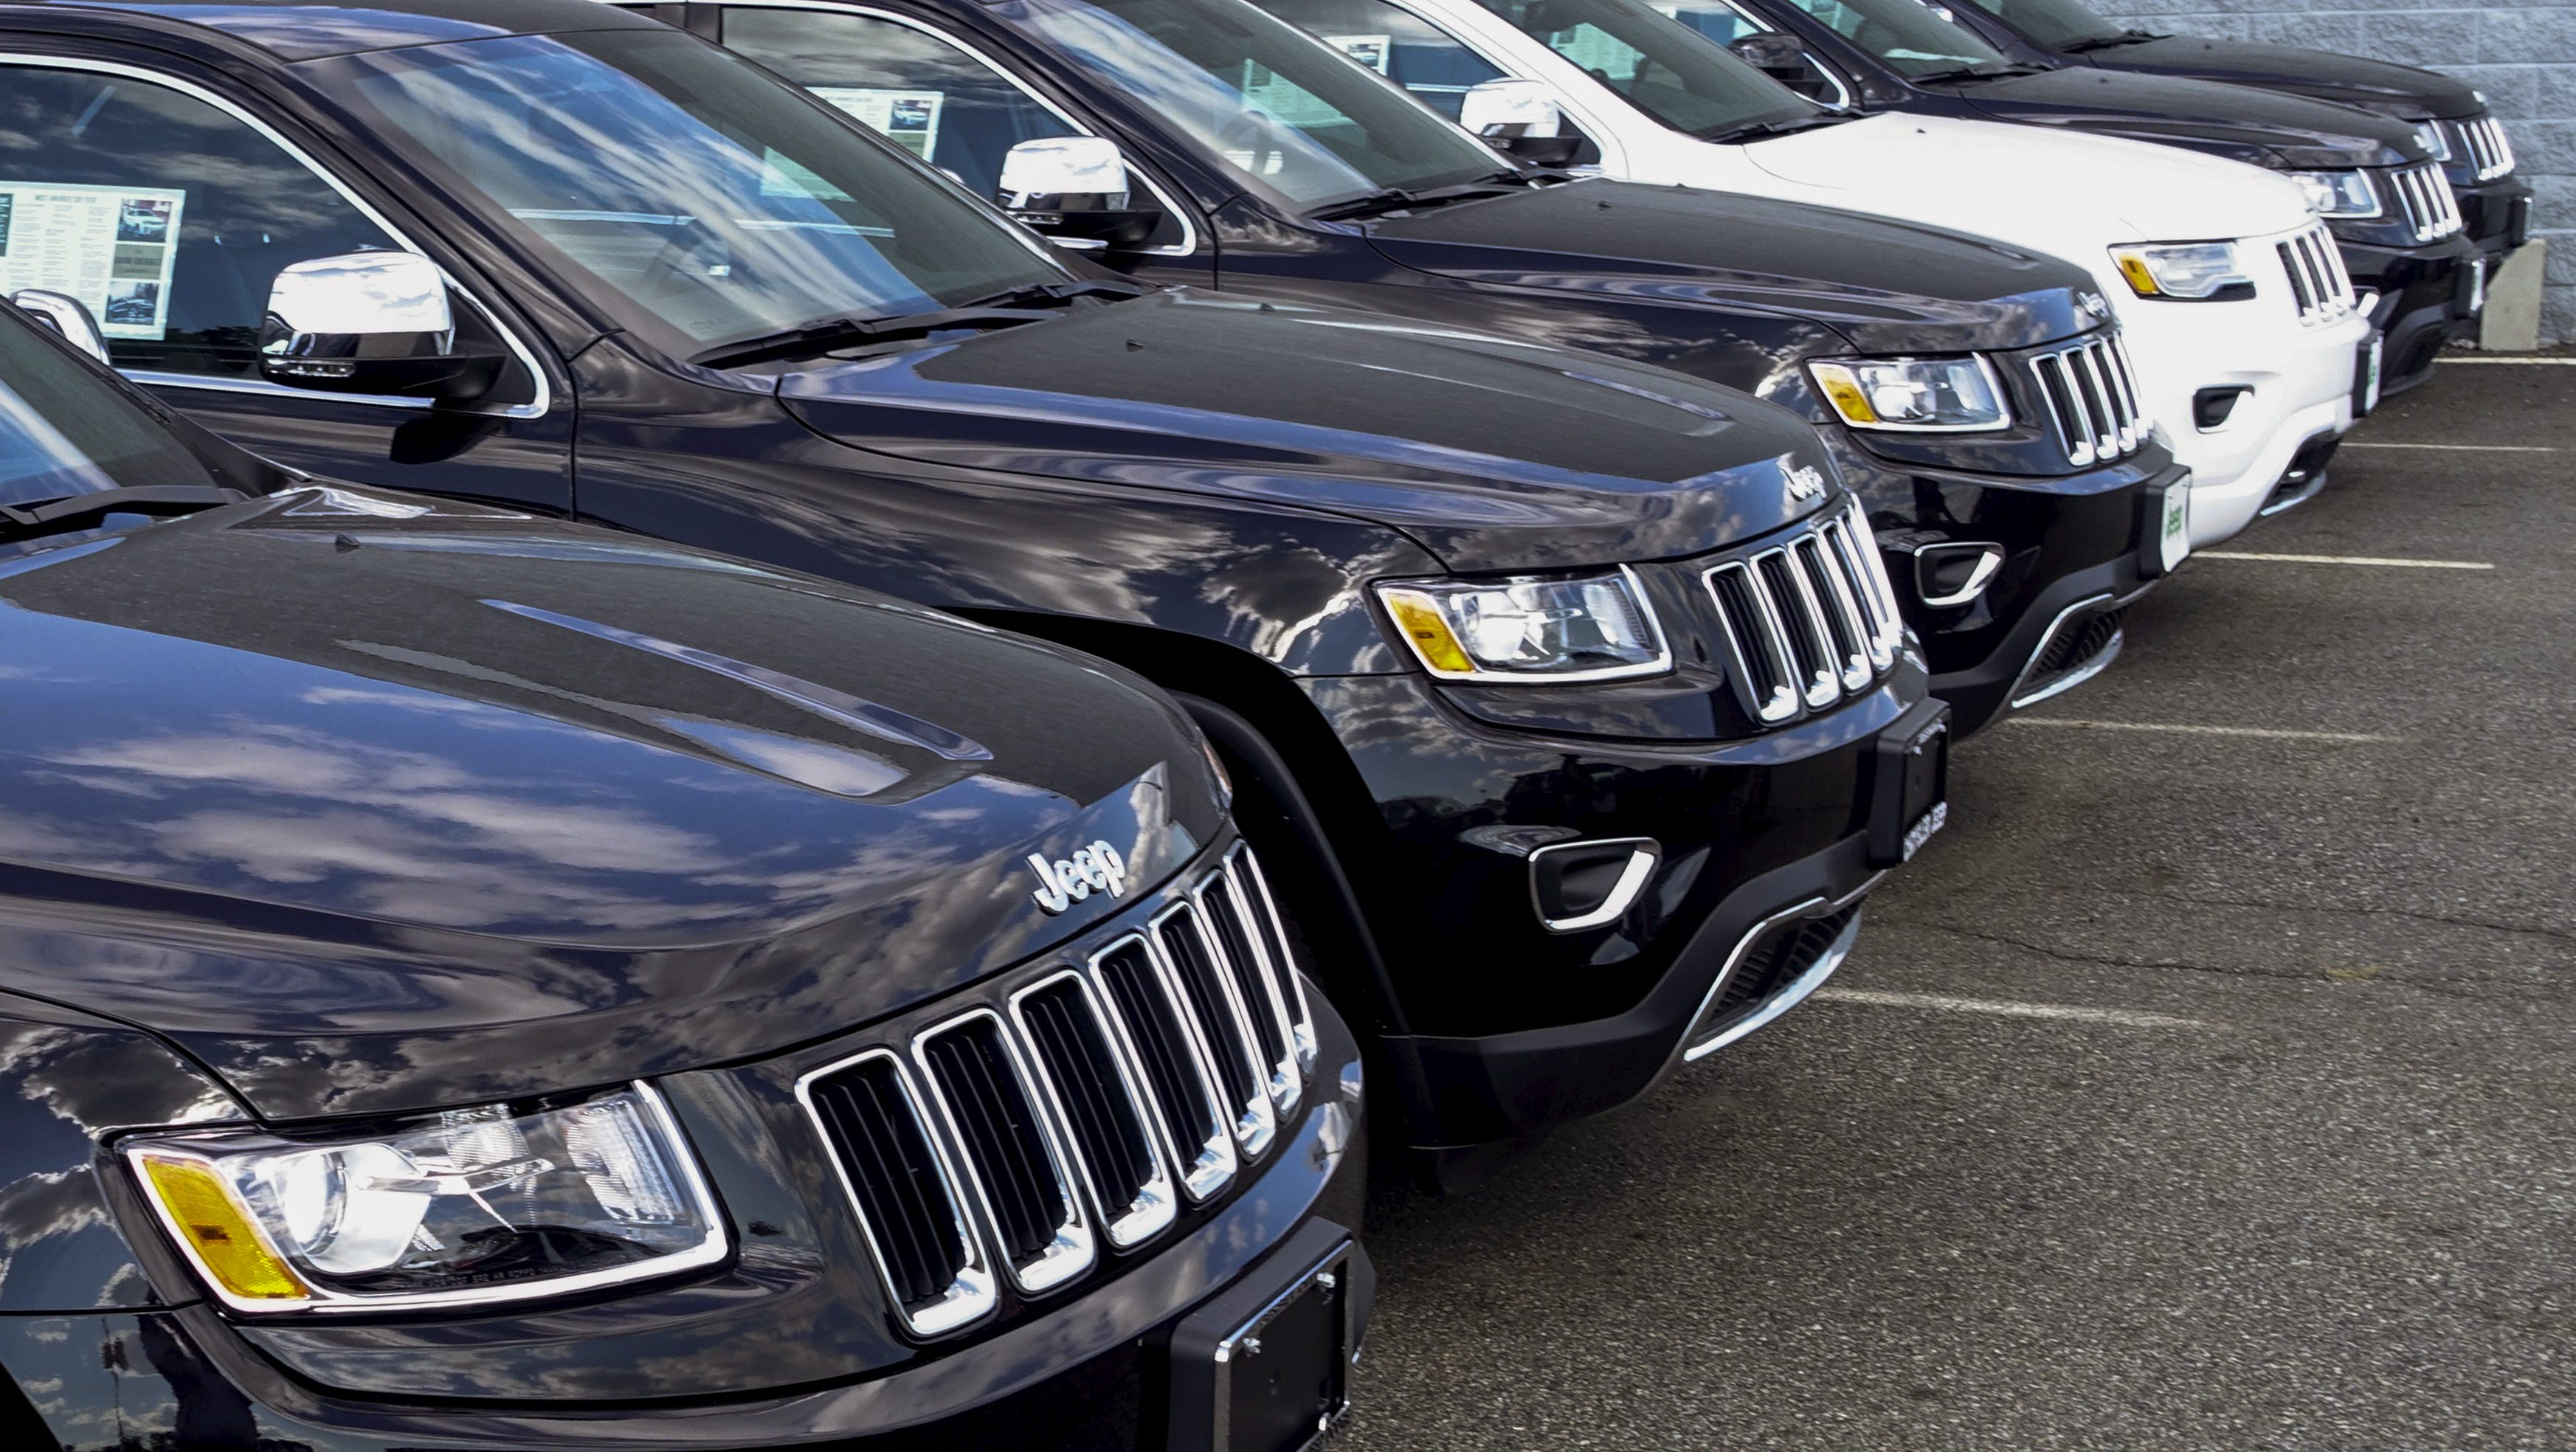 These 2015 Jeep Grand Cherokees may look harmless, but the US says they are loaded with emissions cheating software